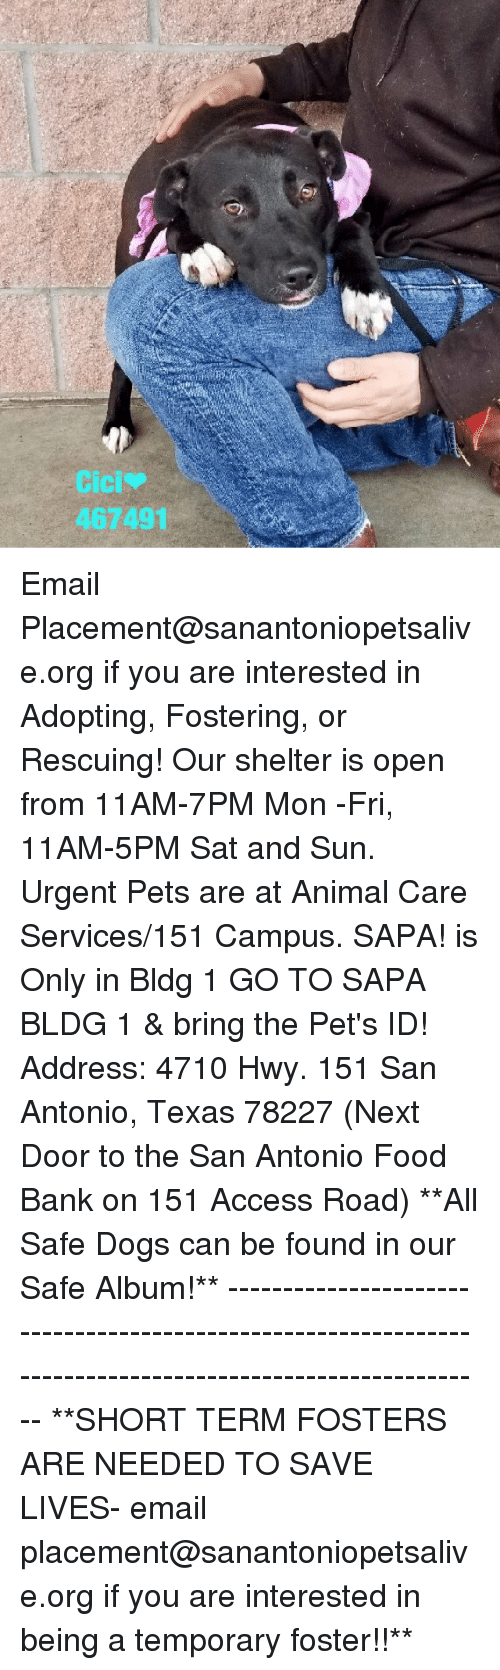 Dogs, Food, and Memes: Cici  467491 Email Placement@sanantoniopetsalive.org if you are interested in Adopting, Fostering, or Rescuing!  Our shelter is open from 11AM-7PM Mon -Fri, 11AM-5PM Sat and Sun.  Urgent Pets are at Animal Care Services/151 Campus. SAPA! is Only in Bldg 1 GO TO SAPA BLDG 1 & bring the Pet's ID! Address: 4710 Hwy. 151 San Antonio, Texas 78227 (Next Door to the San Antonio Food Bank on 151 Access Road)  **All Safe Dogs can be found in our Safe Album!** ---------------------------------------------------------------------------------------------------------- **SHORT TERM FOSTERS ARE NEEDED TO SAVE LIVES- email placement@sanantoniopetsalive.org if you are interested in being a temporary foster!!**